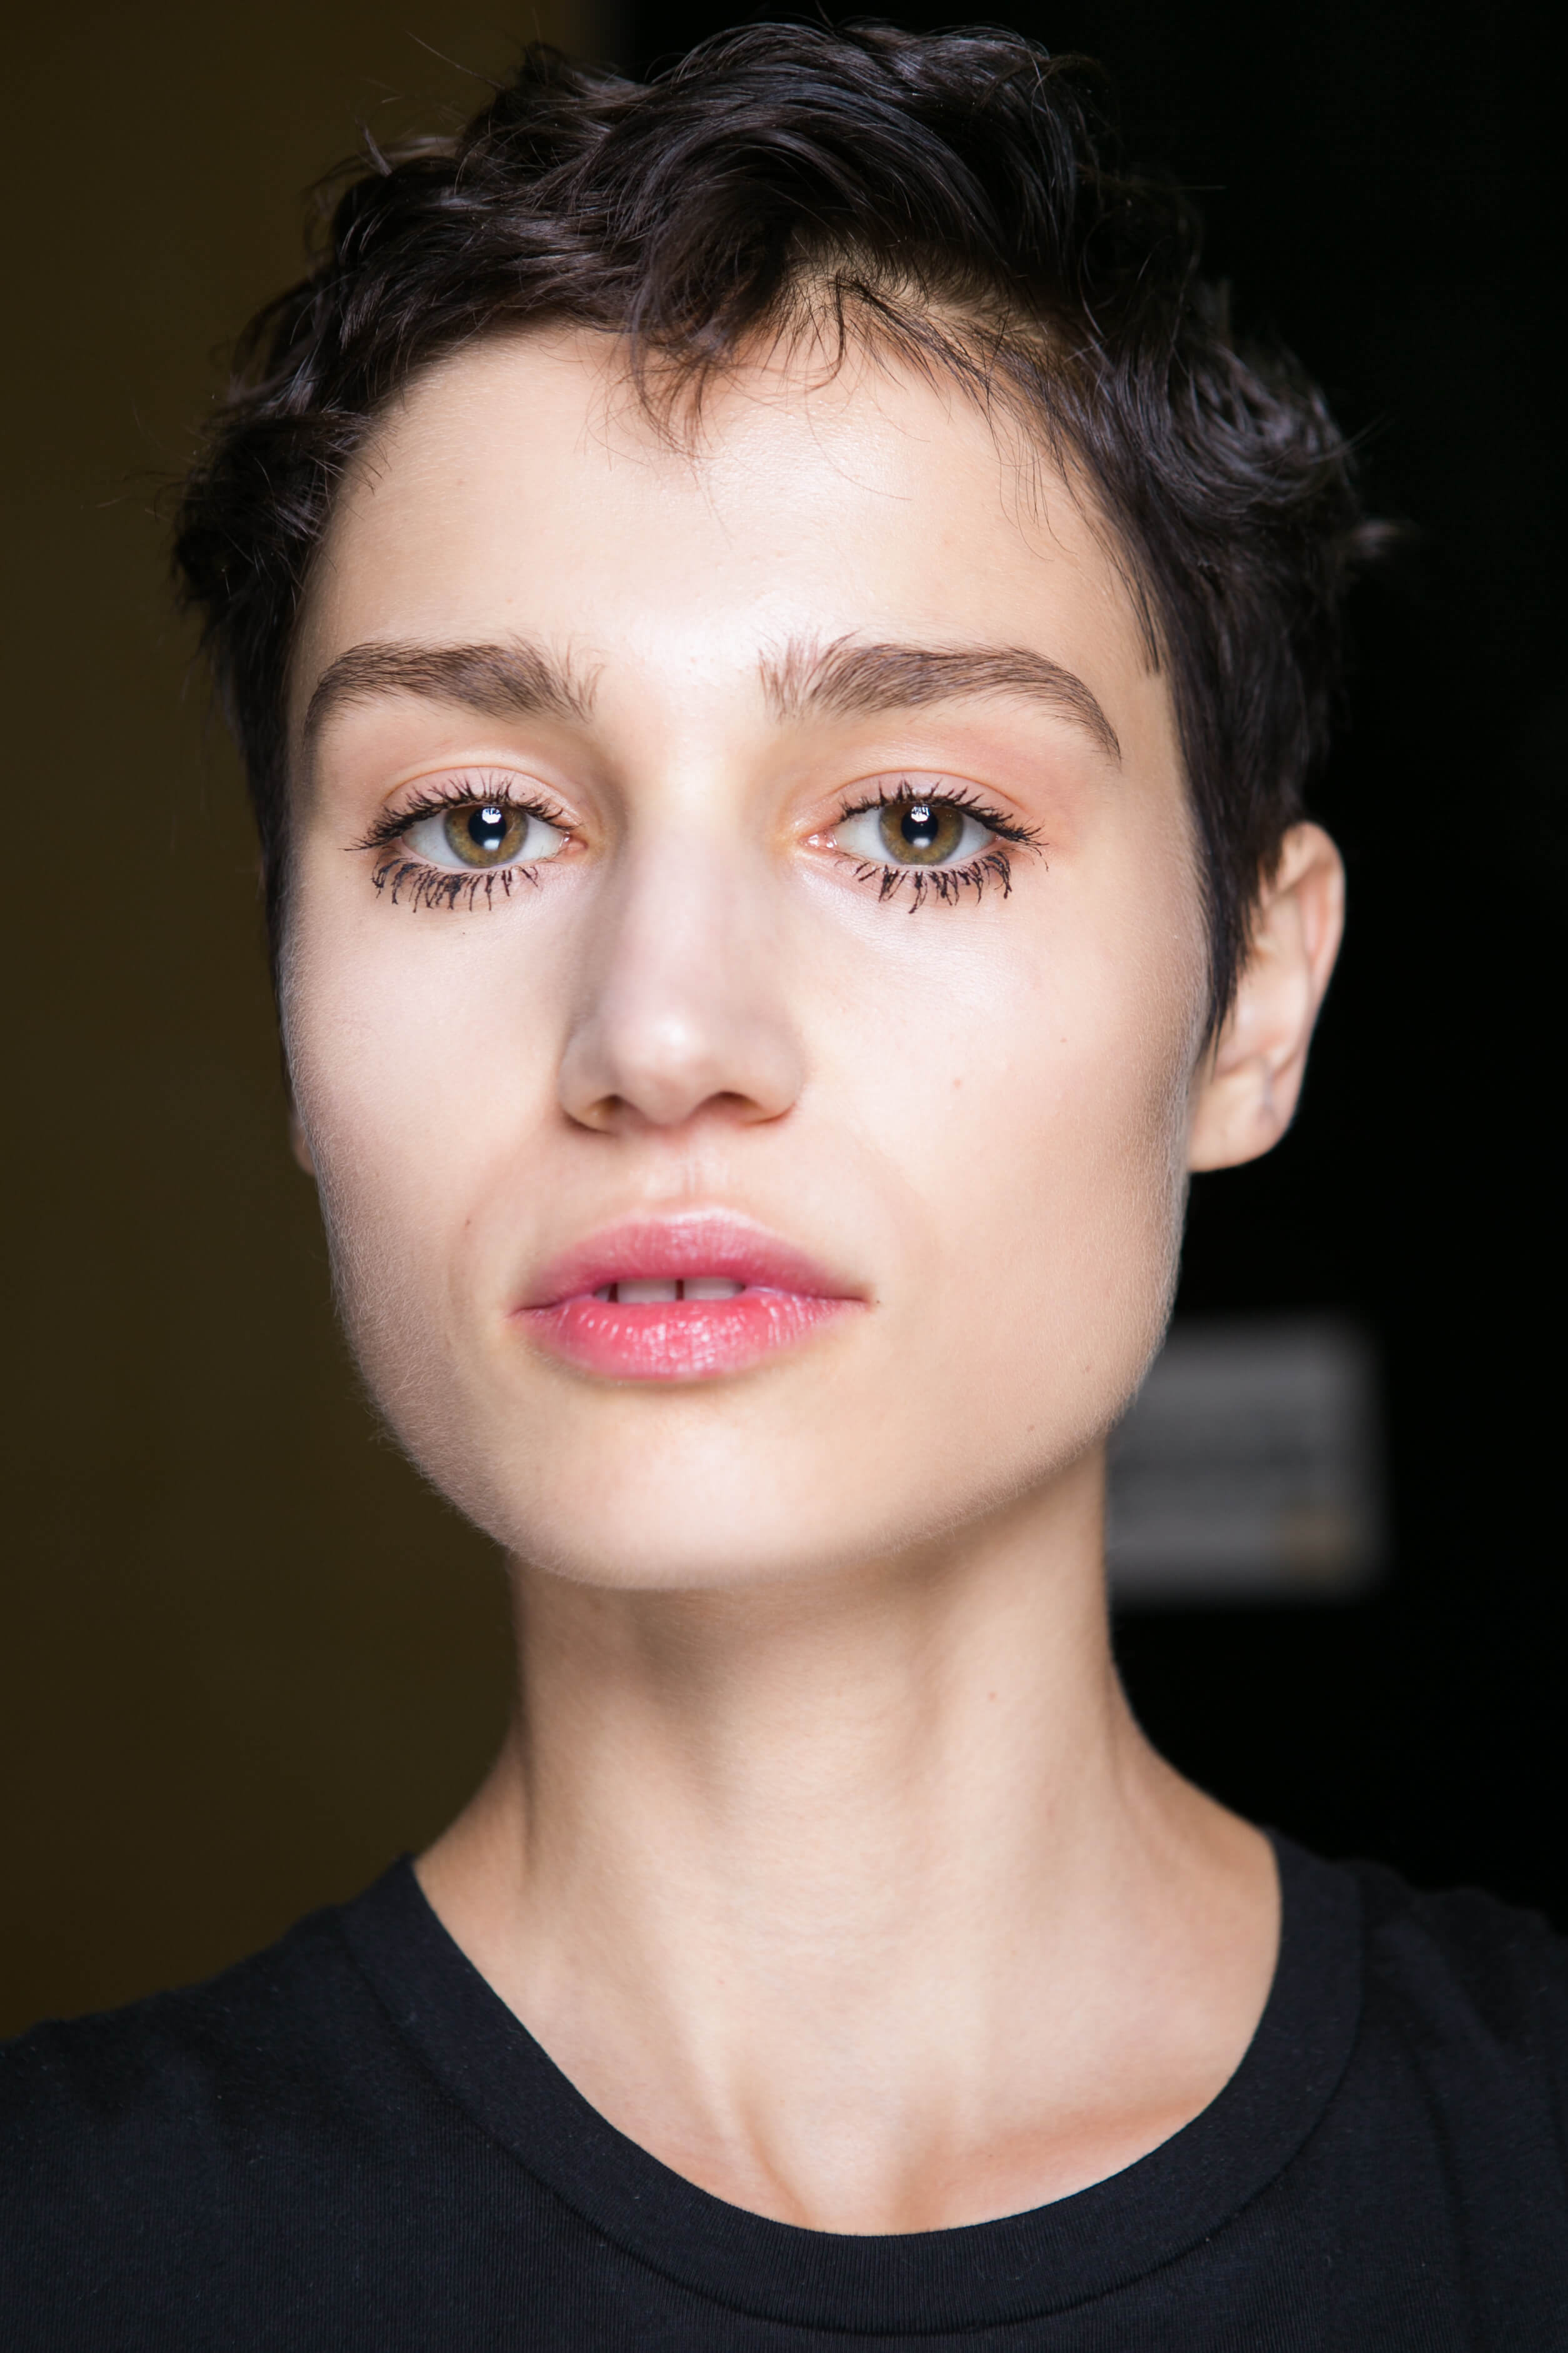 Pixie cuts for oval faces: Brown spiked up pixie cut